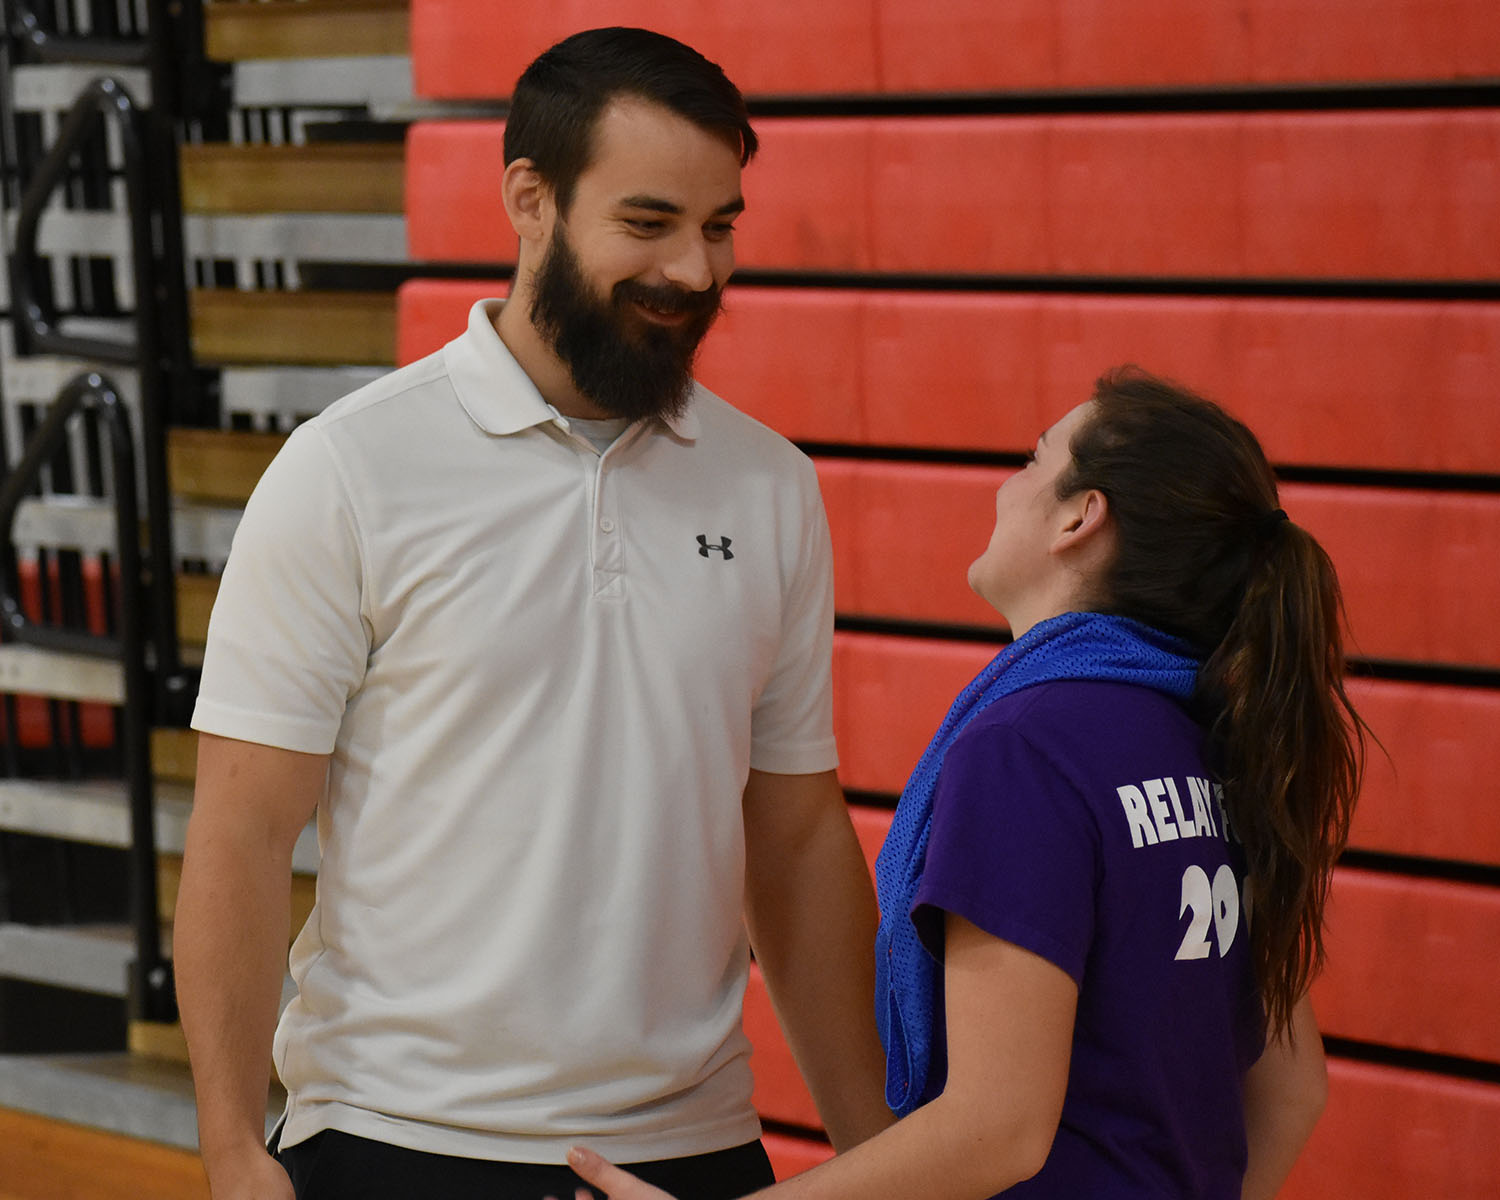 Mr. Landis interacts with a senior in P.E. class.